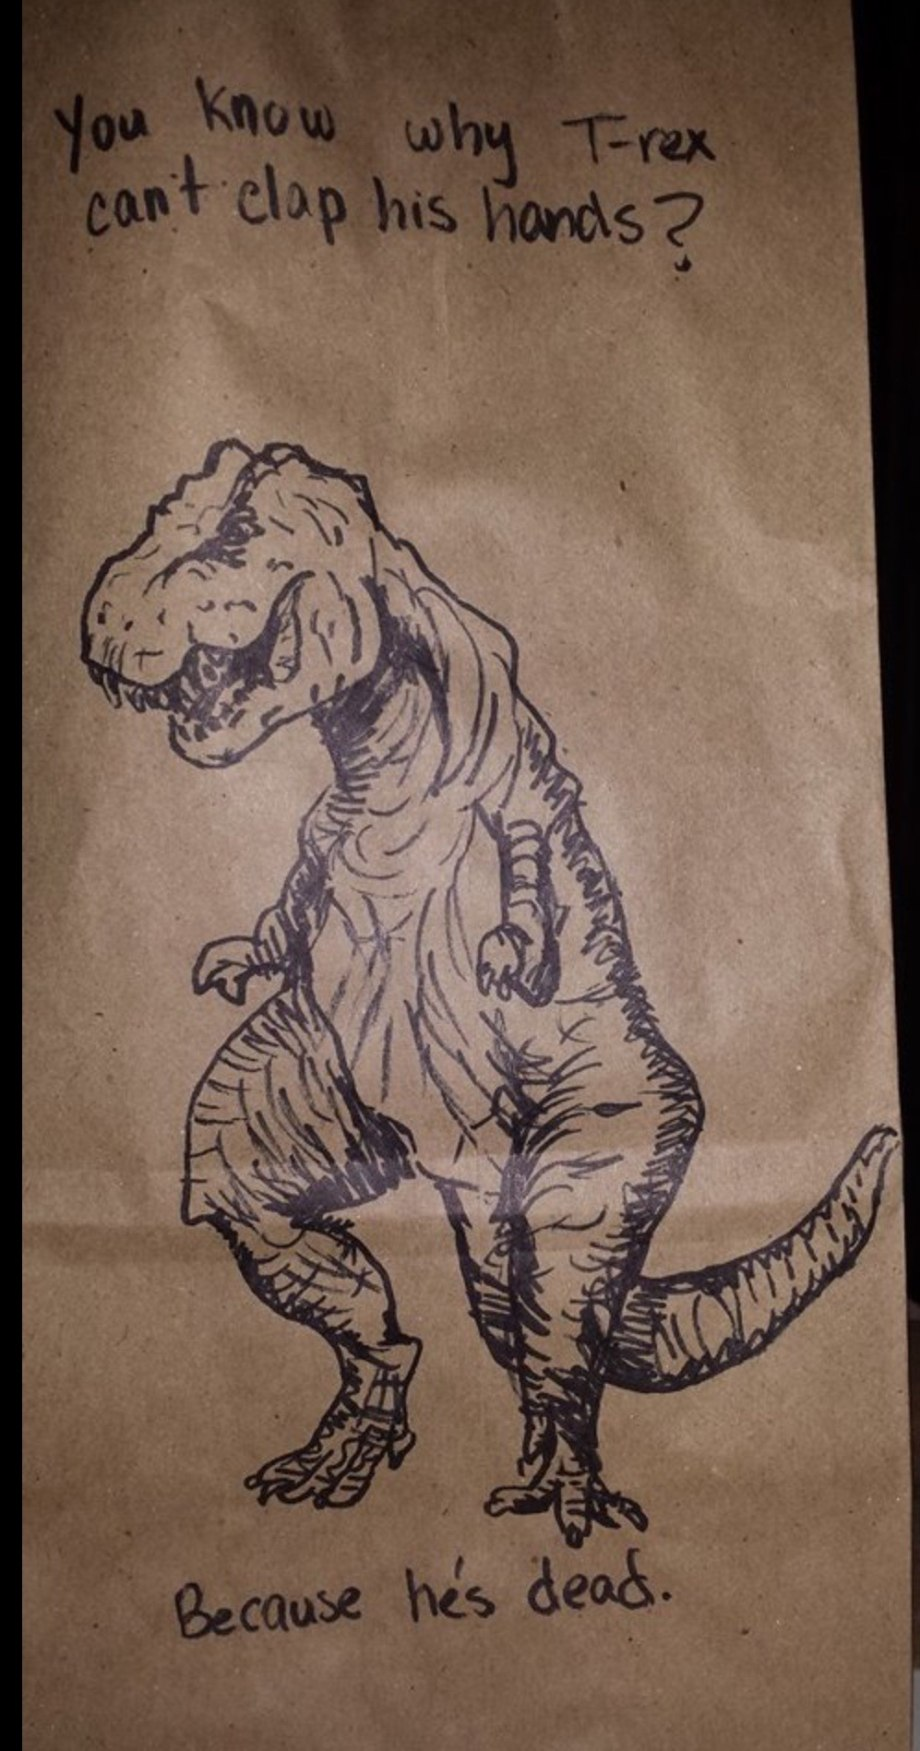 you-know-why-t-rex-cant-clap-his-hands